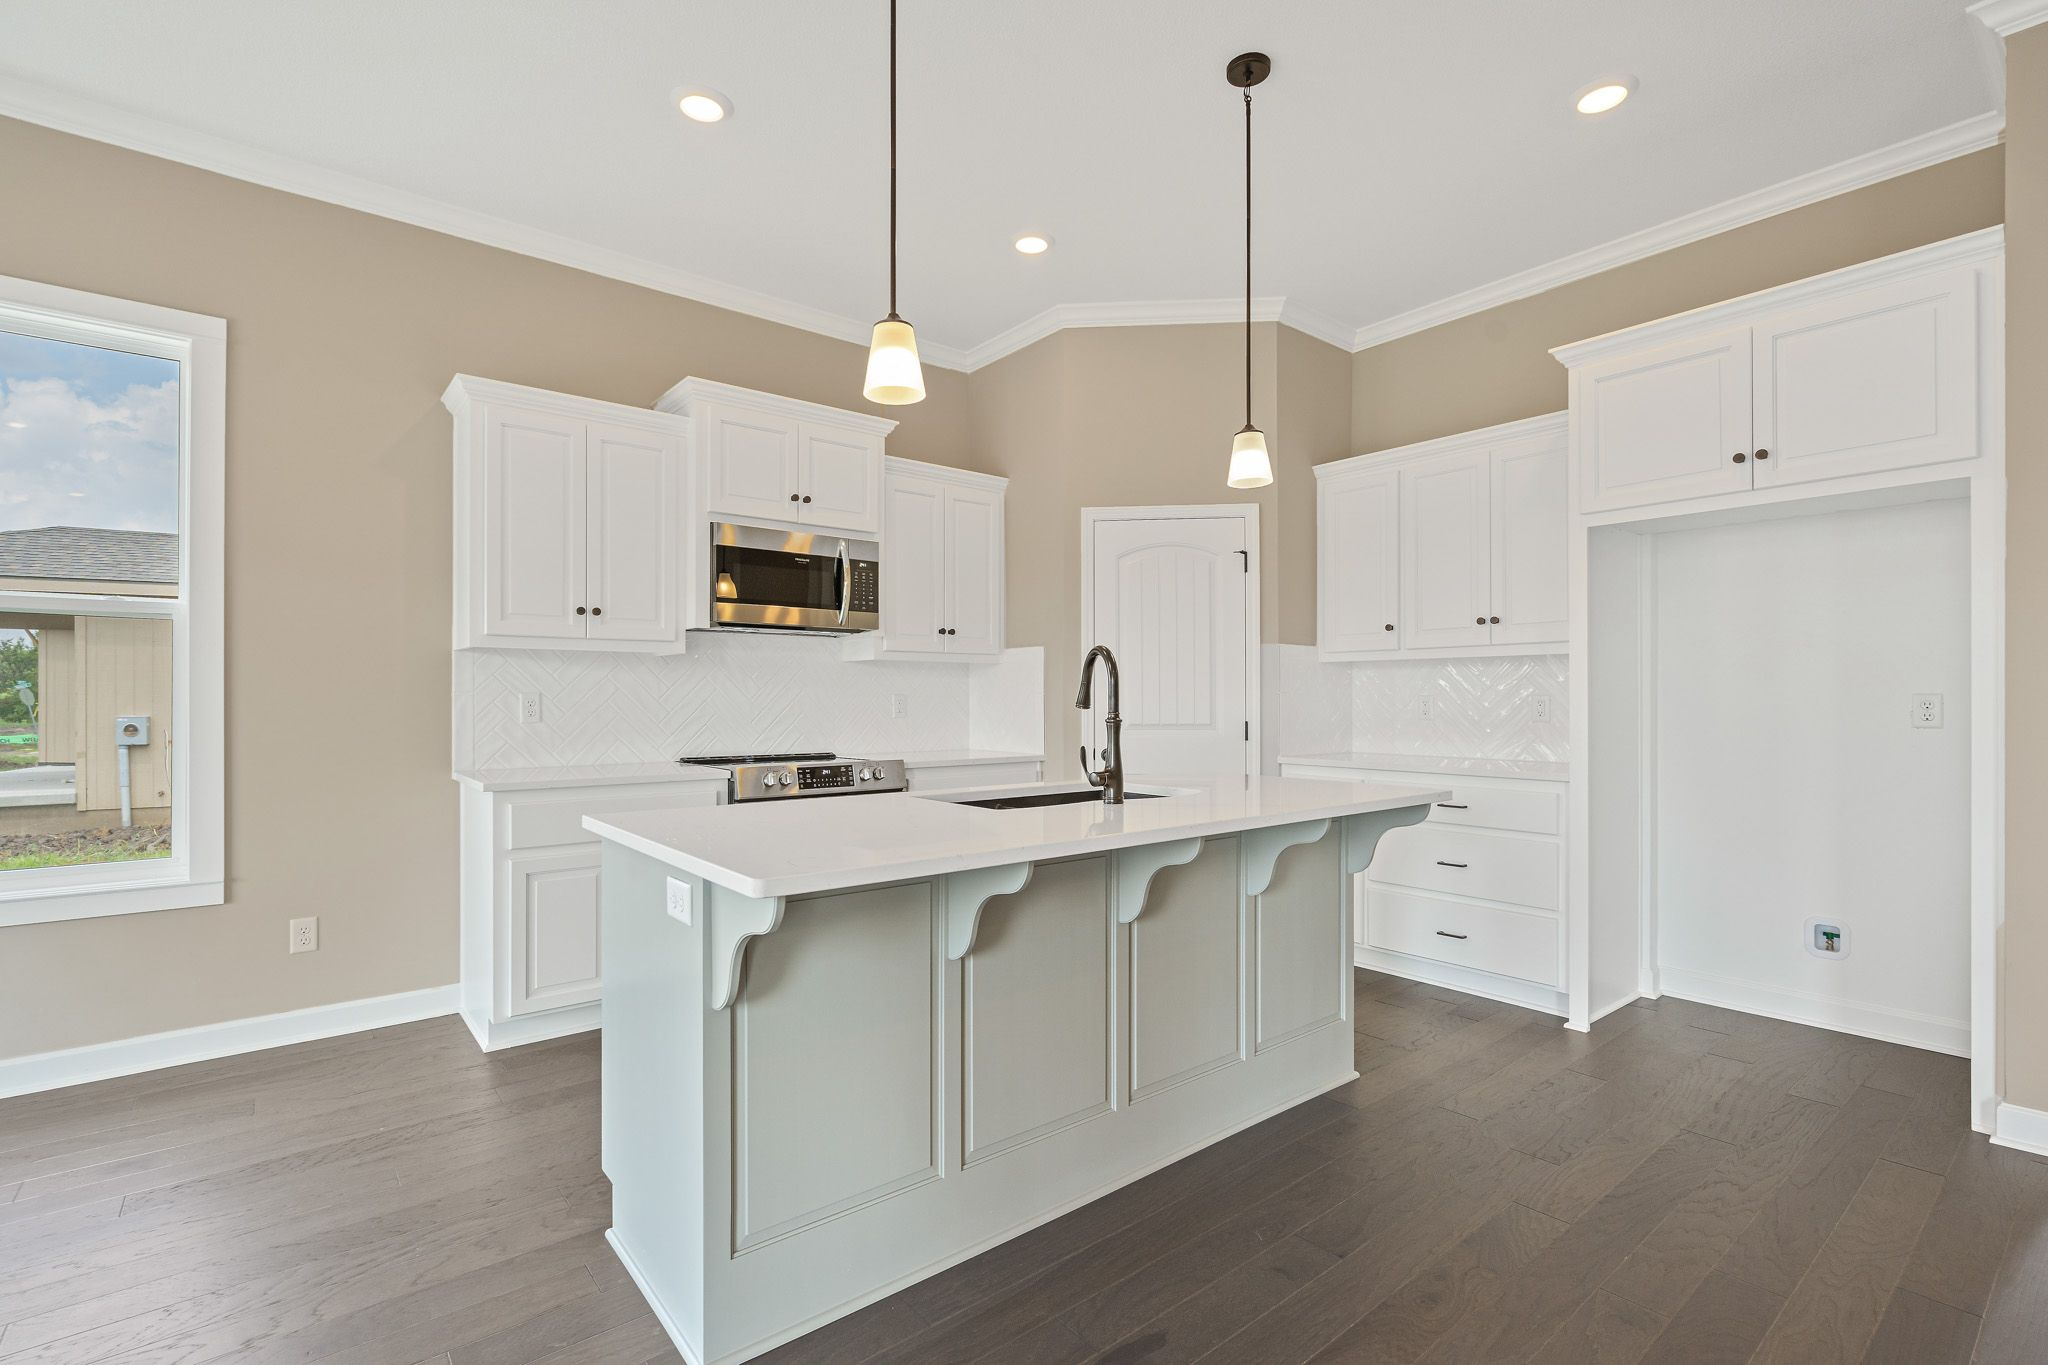 Kitchen featured in the Westport - Care Free By Summit Homes in Kansas City, KS